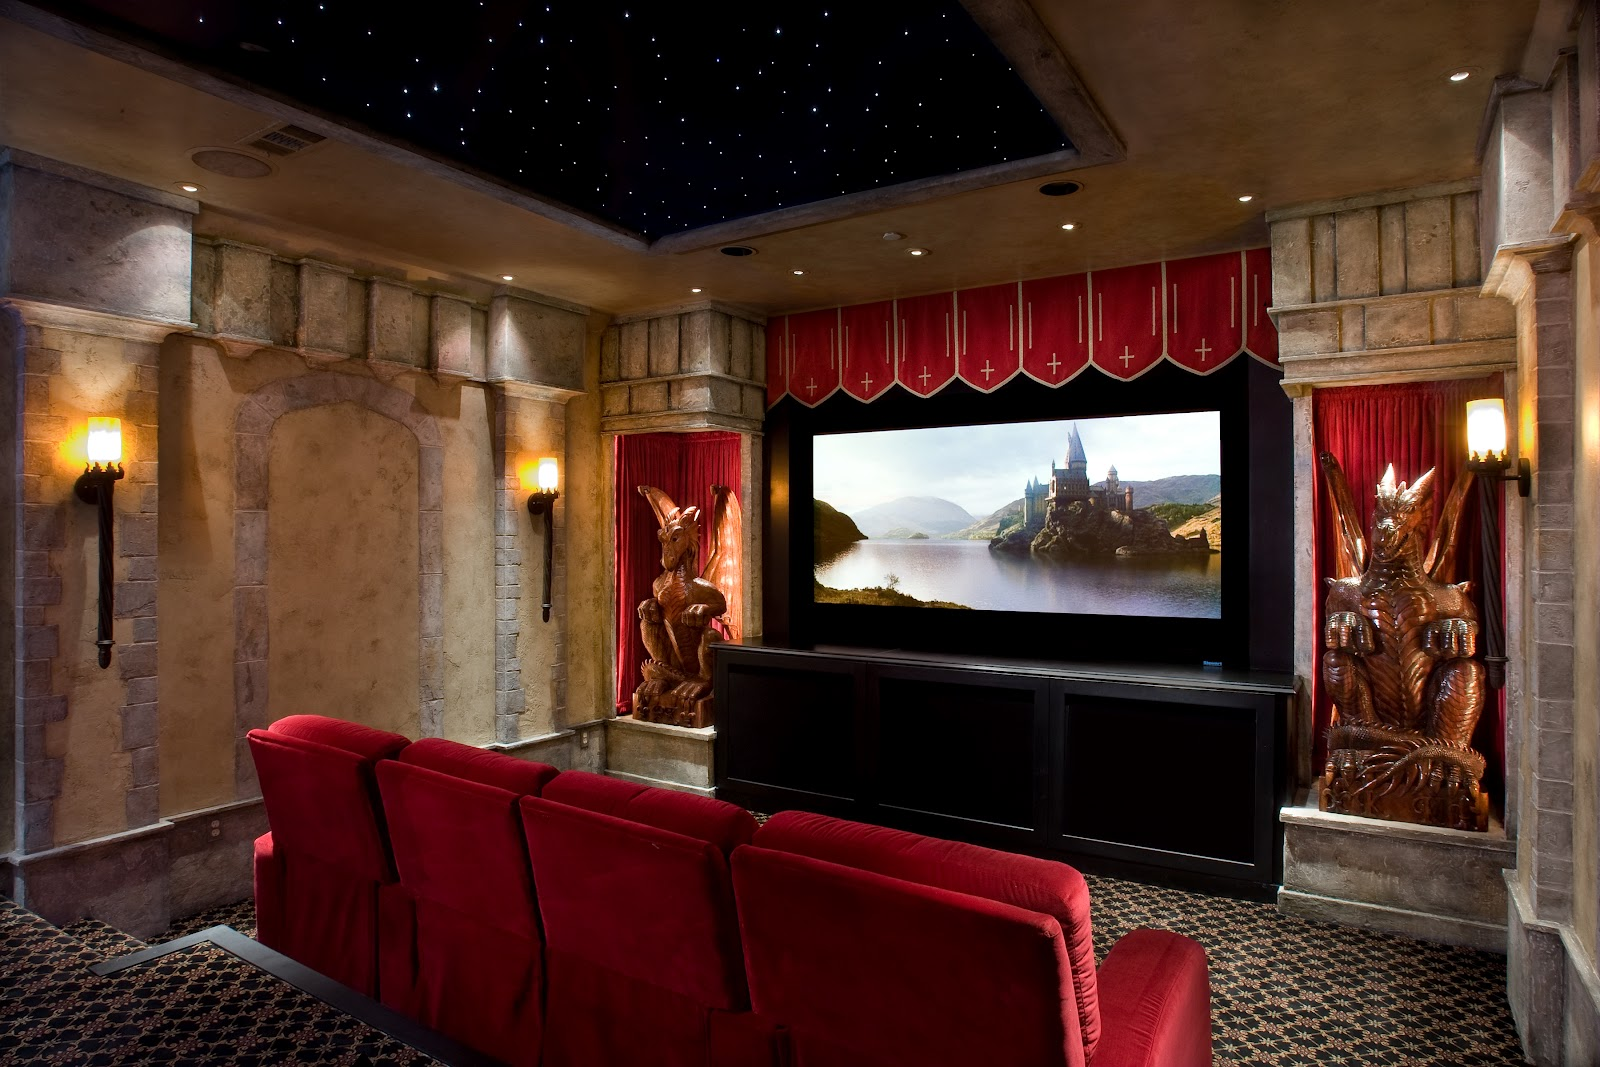 Not just plain jane a movie night in Home cinema interior design ideas